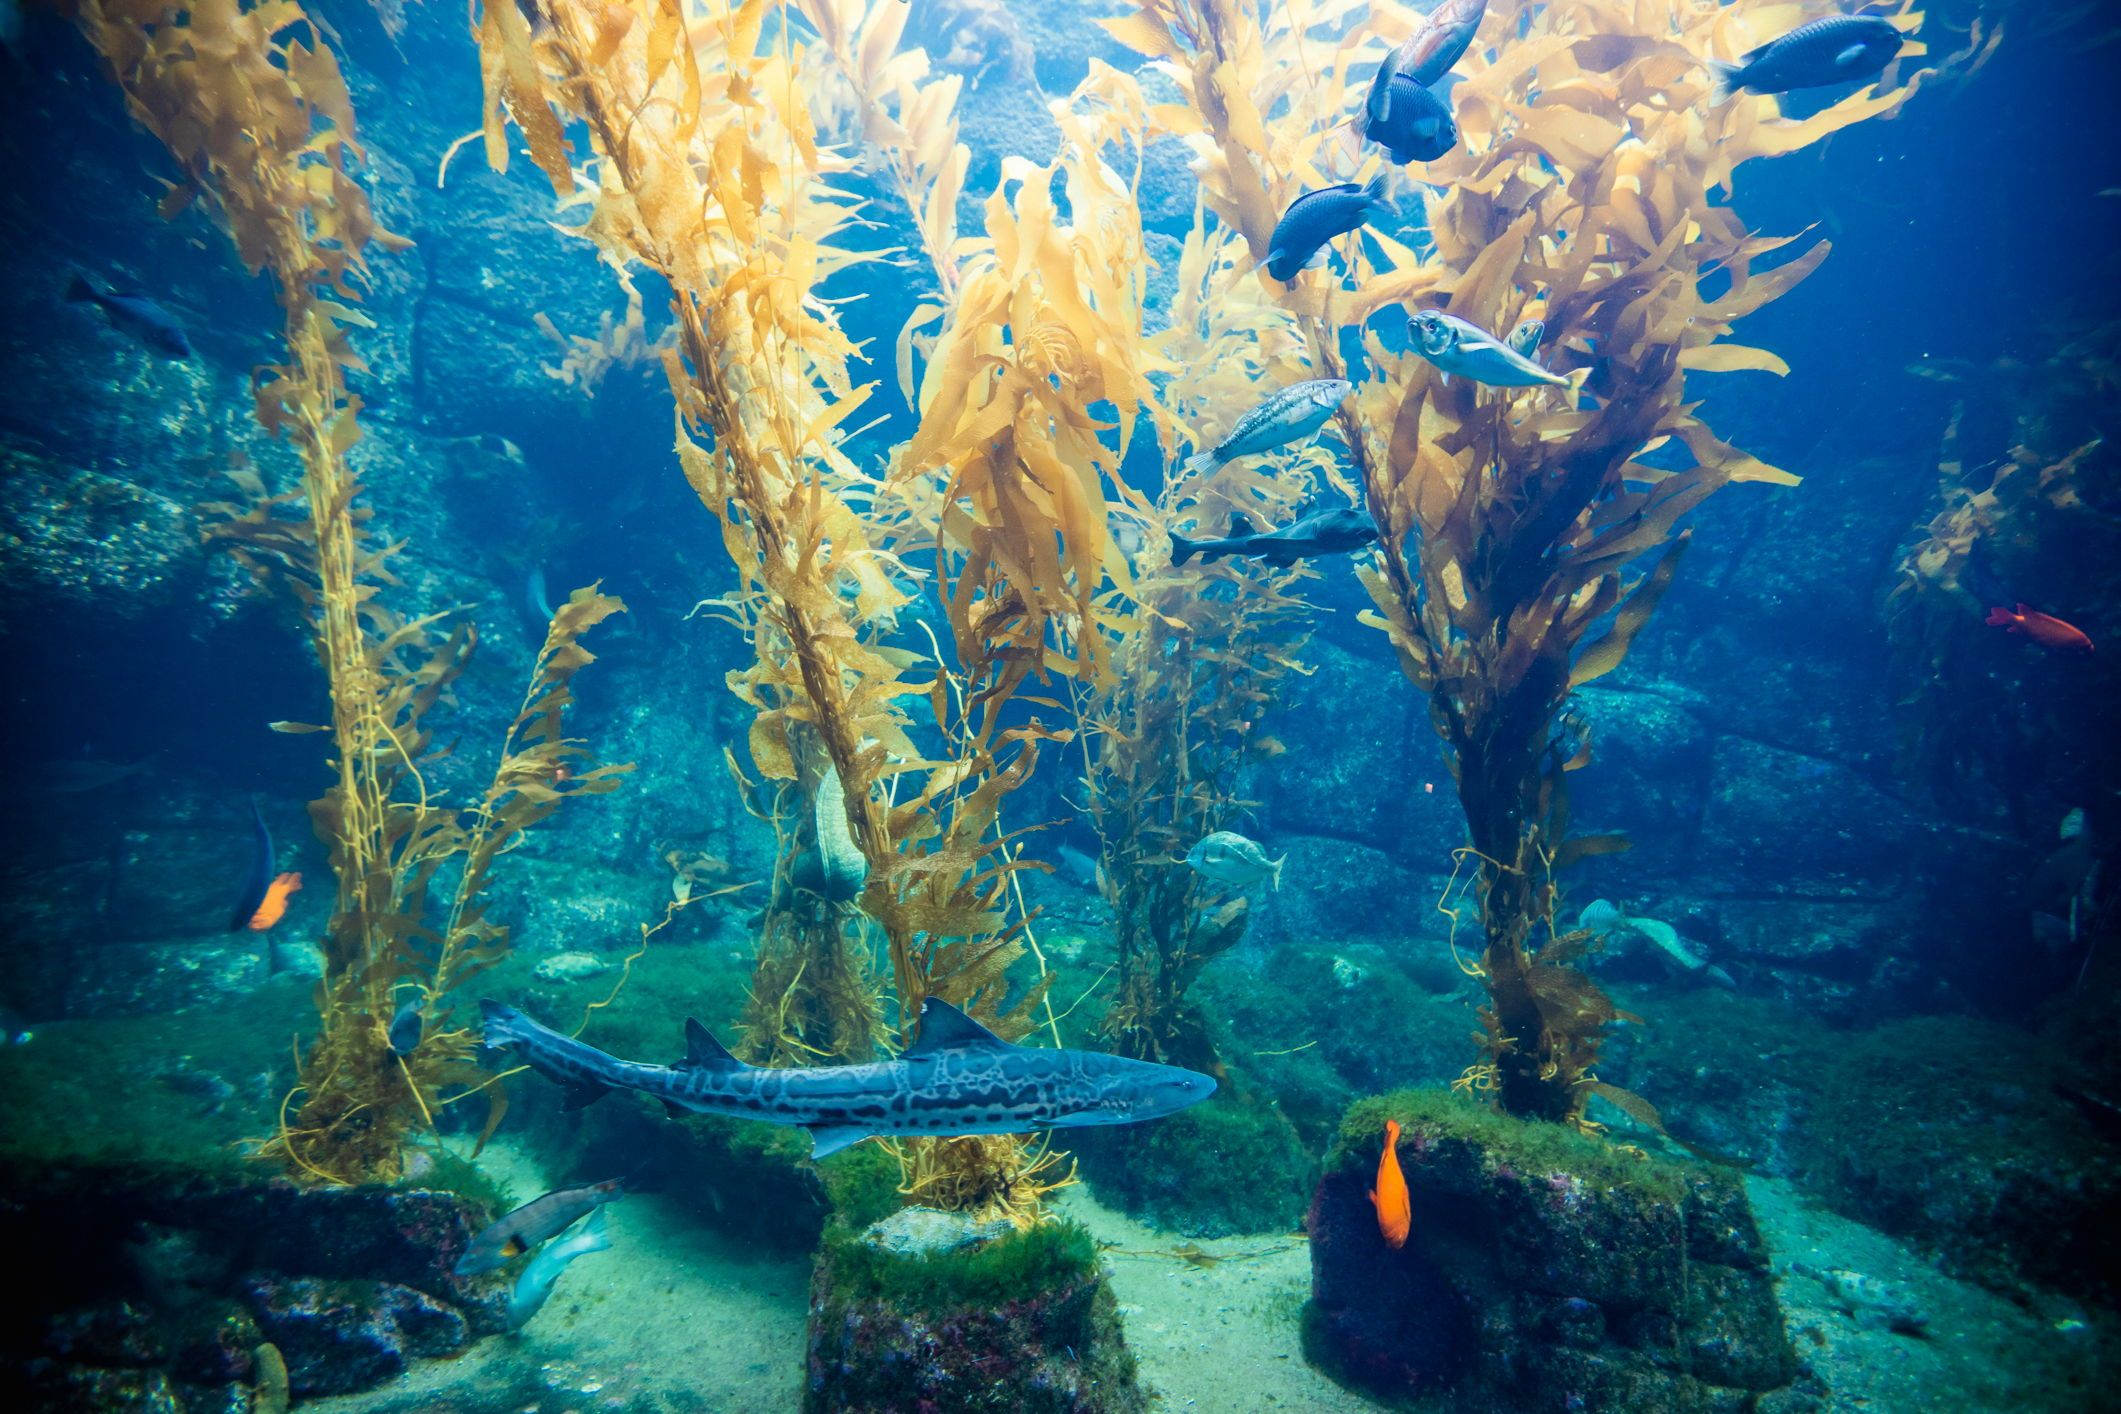 Dive deeper at Birch Aquarium at Scripps and learn all